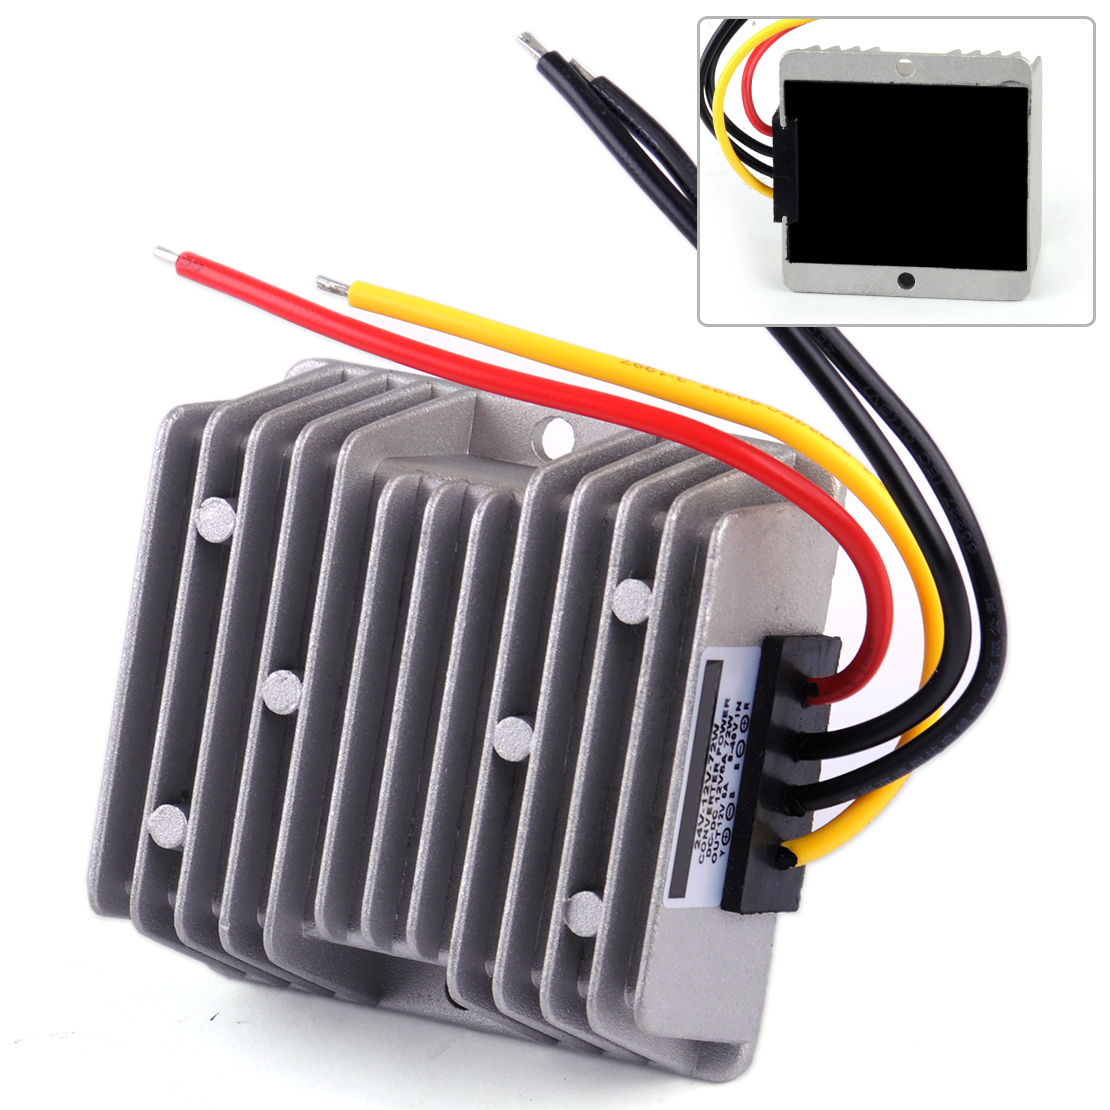 DWCX Universal Waterproof Car Power Automatic DC 8V~40V To 12V Voltage Stabilizer Regulator 6A 72W Step-down Supply ConverterDWCX Universal Waterproof Car Power Automatic DC 8V~40V To 12V Voltage Stabilizer Regulator 6A 72W Step-down Supply Converter